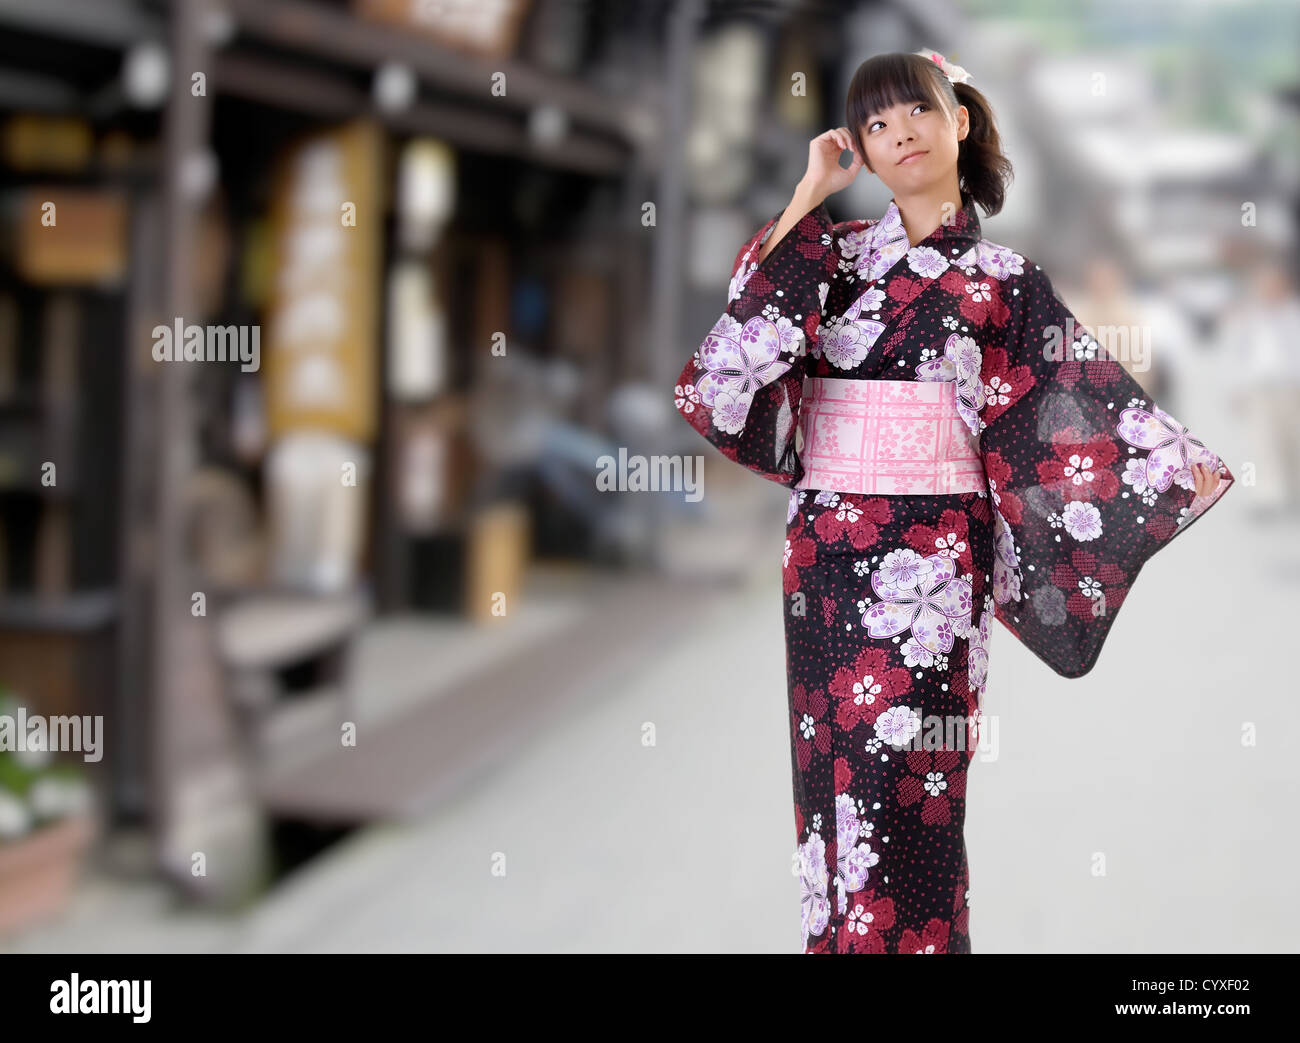 Japanese girl walking on street with blurred background. - Stock Image